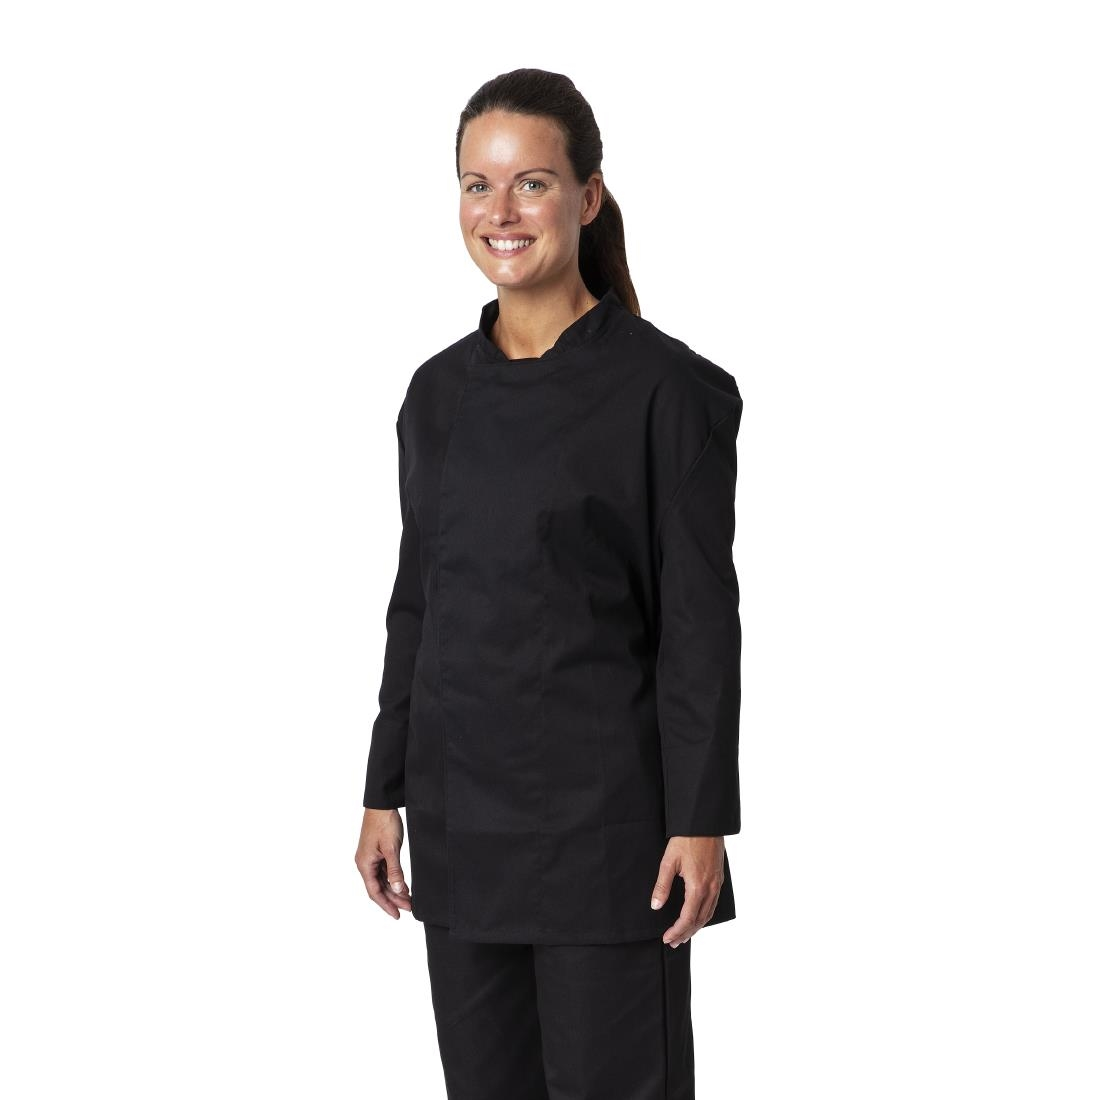 Click to view product details and reviews for Whites Unisex Atlanta Chef Jacket Black Teflon Size Xxl.